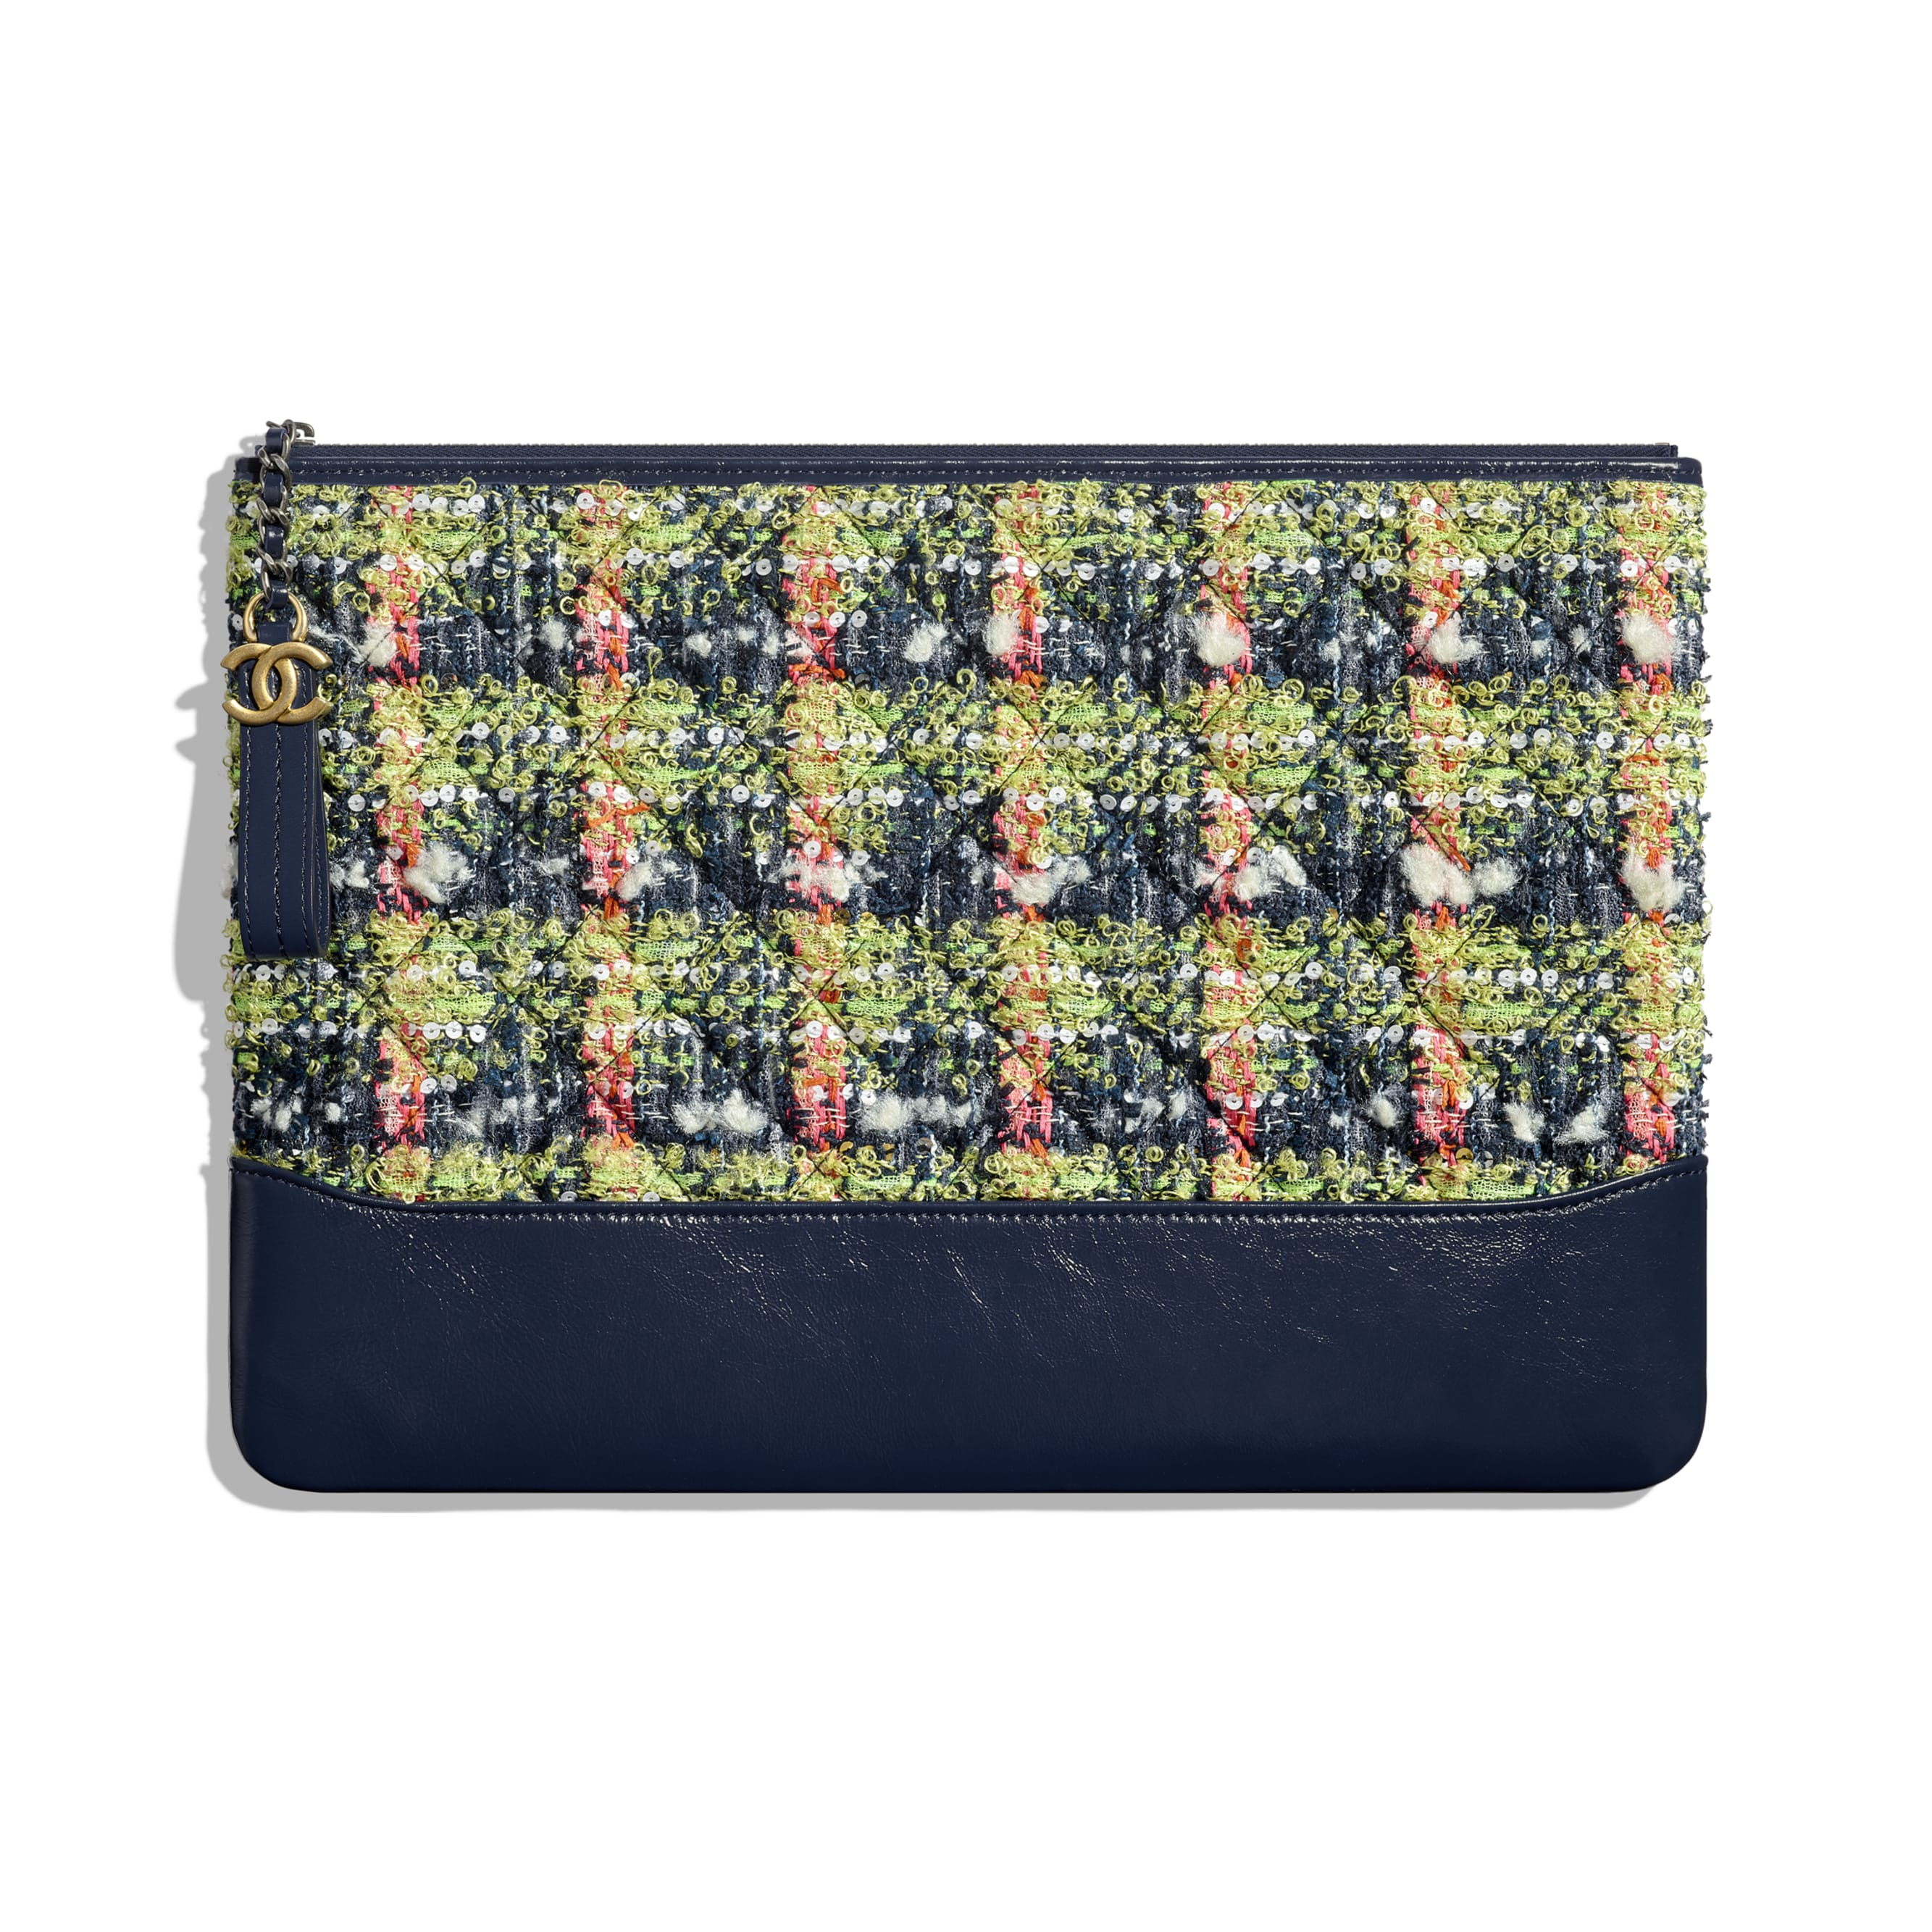 Large Clutch - Navy Blue, Green, Pink & White - Tweed, Calfskin, Gold-Tone, Silver-Tone & Ruthenium-Finish Metal - CHANEL - Default view - see standard sized version